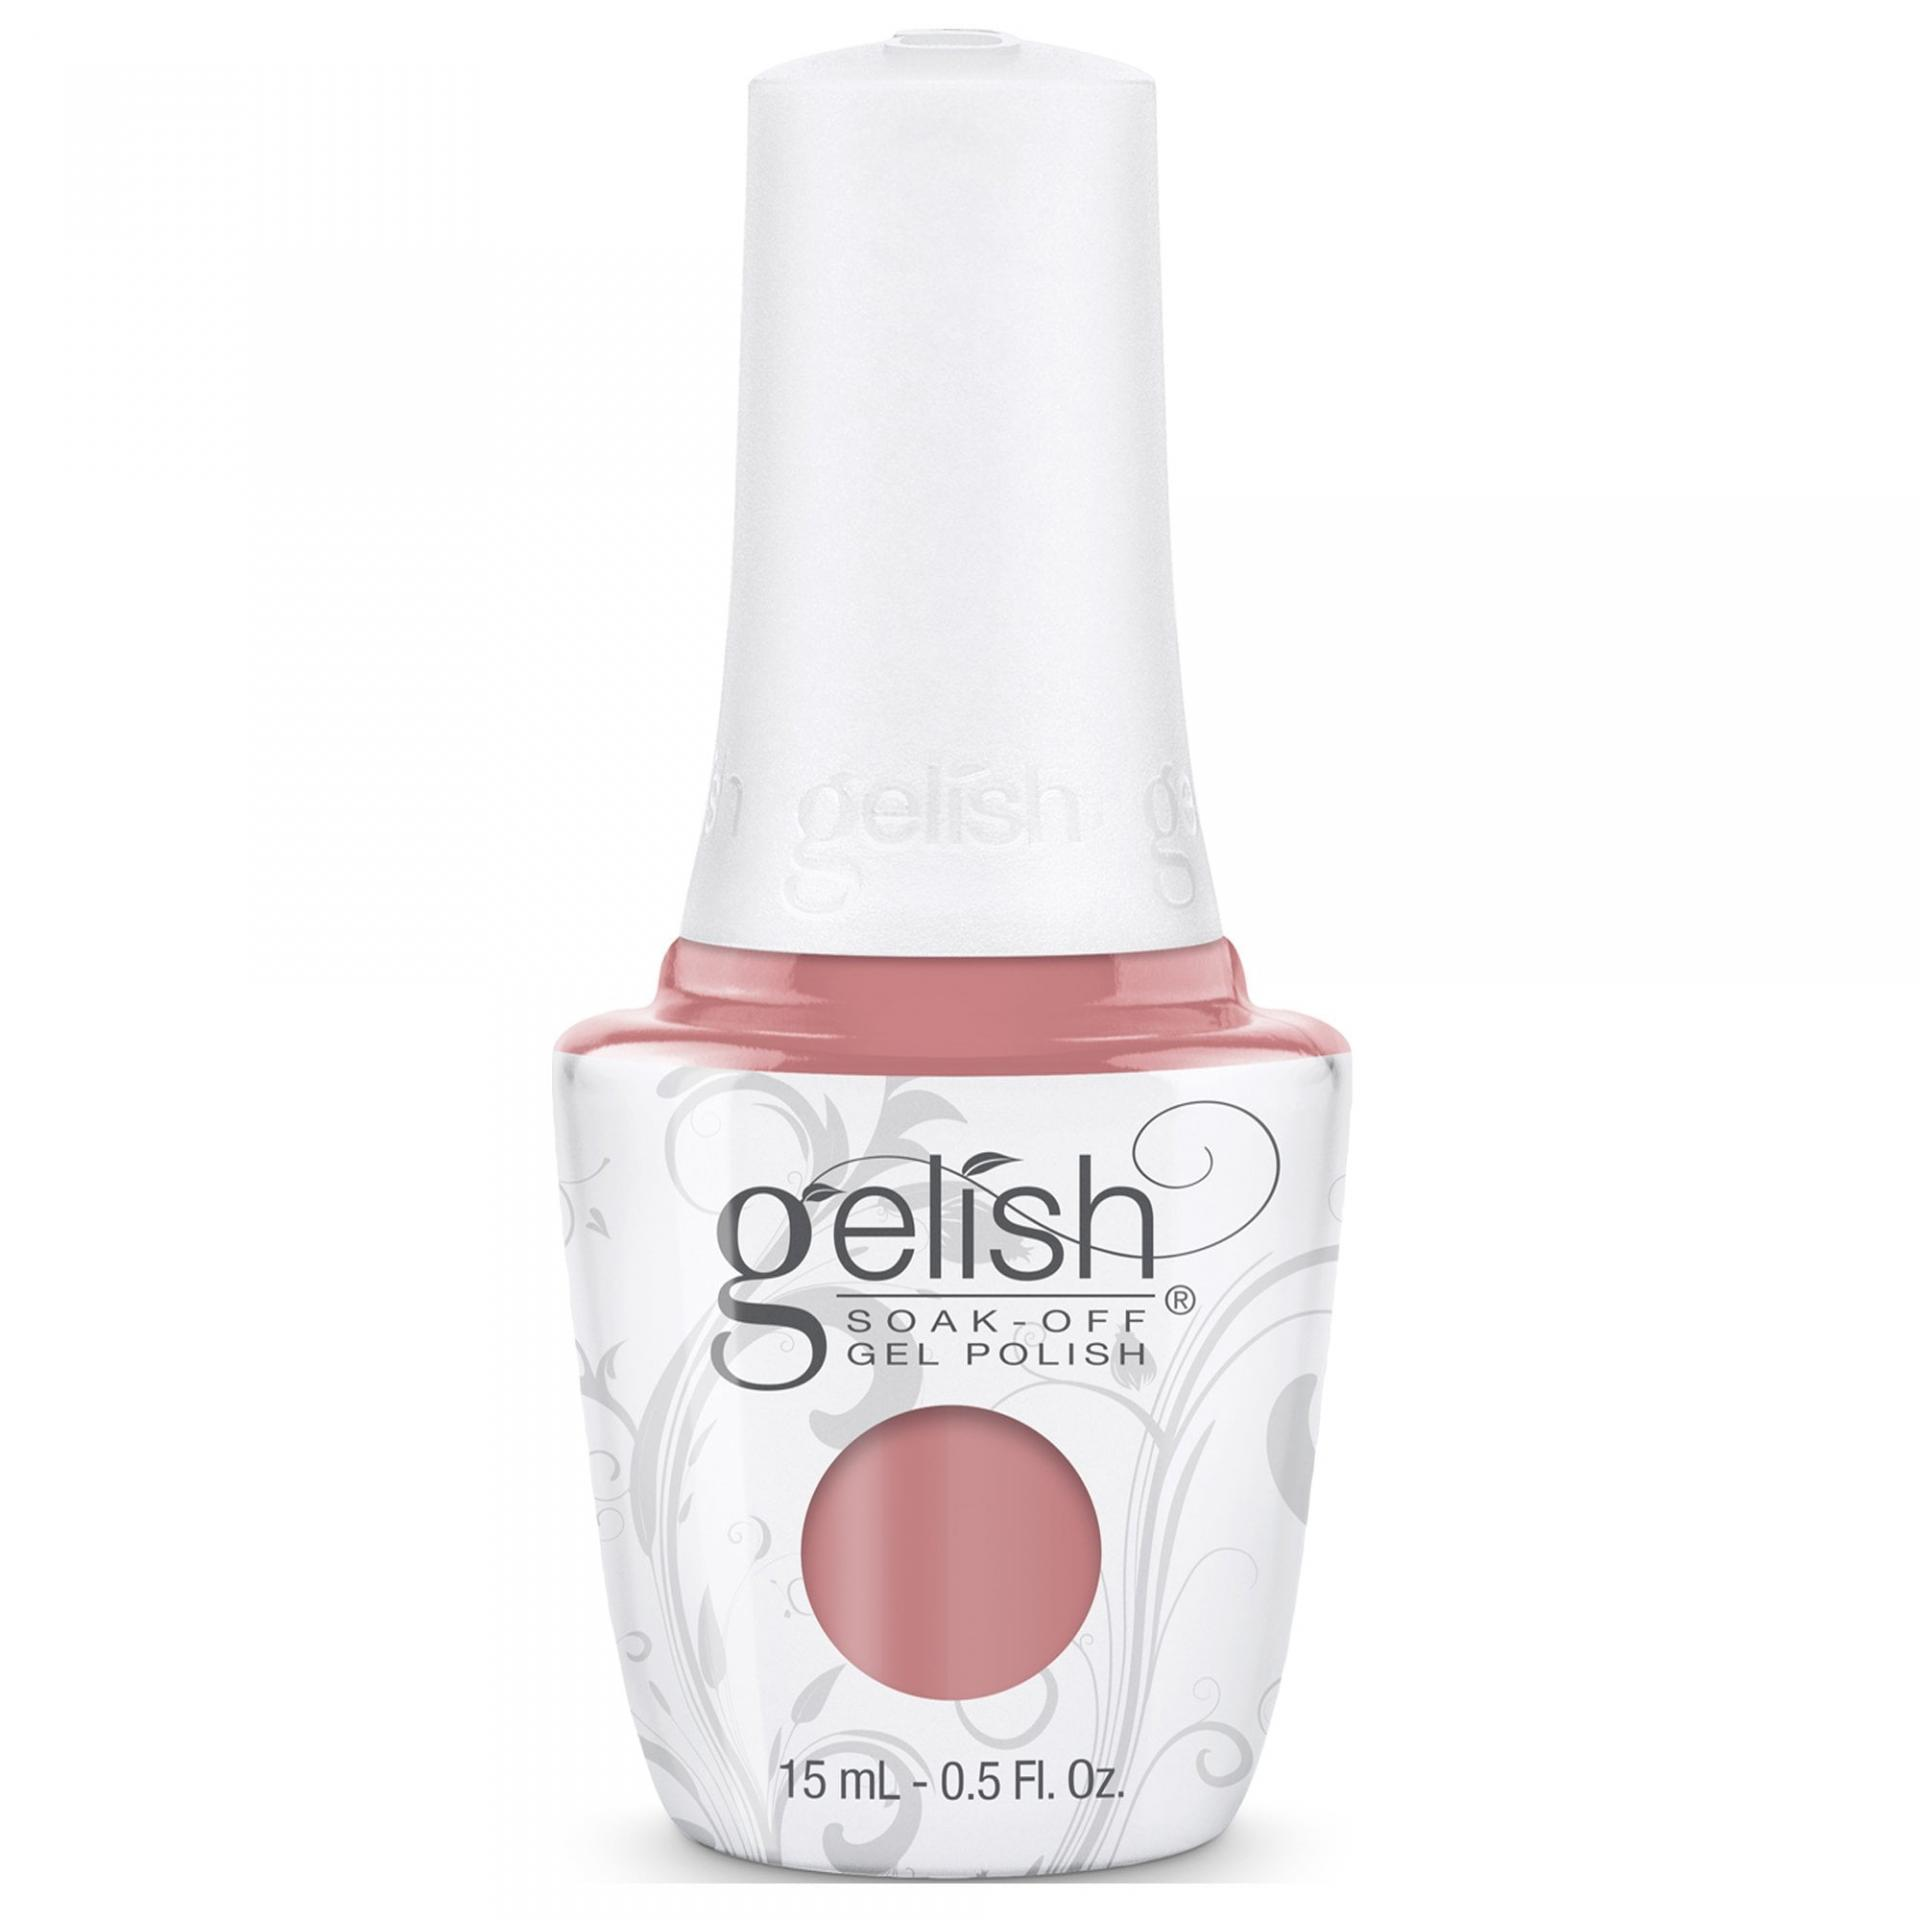 Gelish forever fabulous 2018 gel polish collection hollywoods sweetheart 15ml 1110336 p25750 100378 zoom